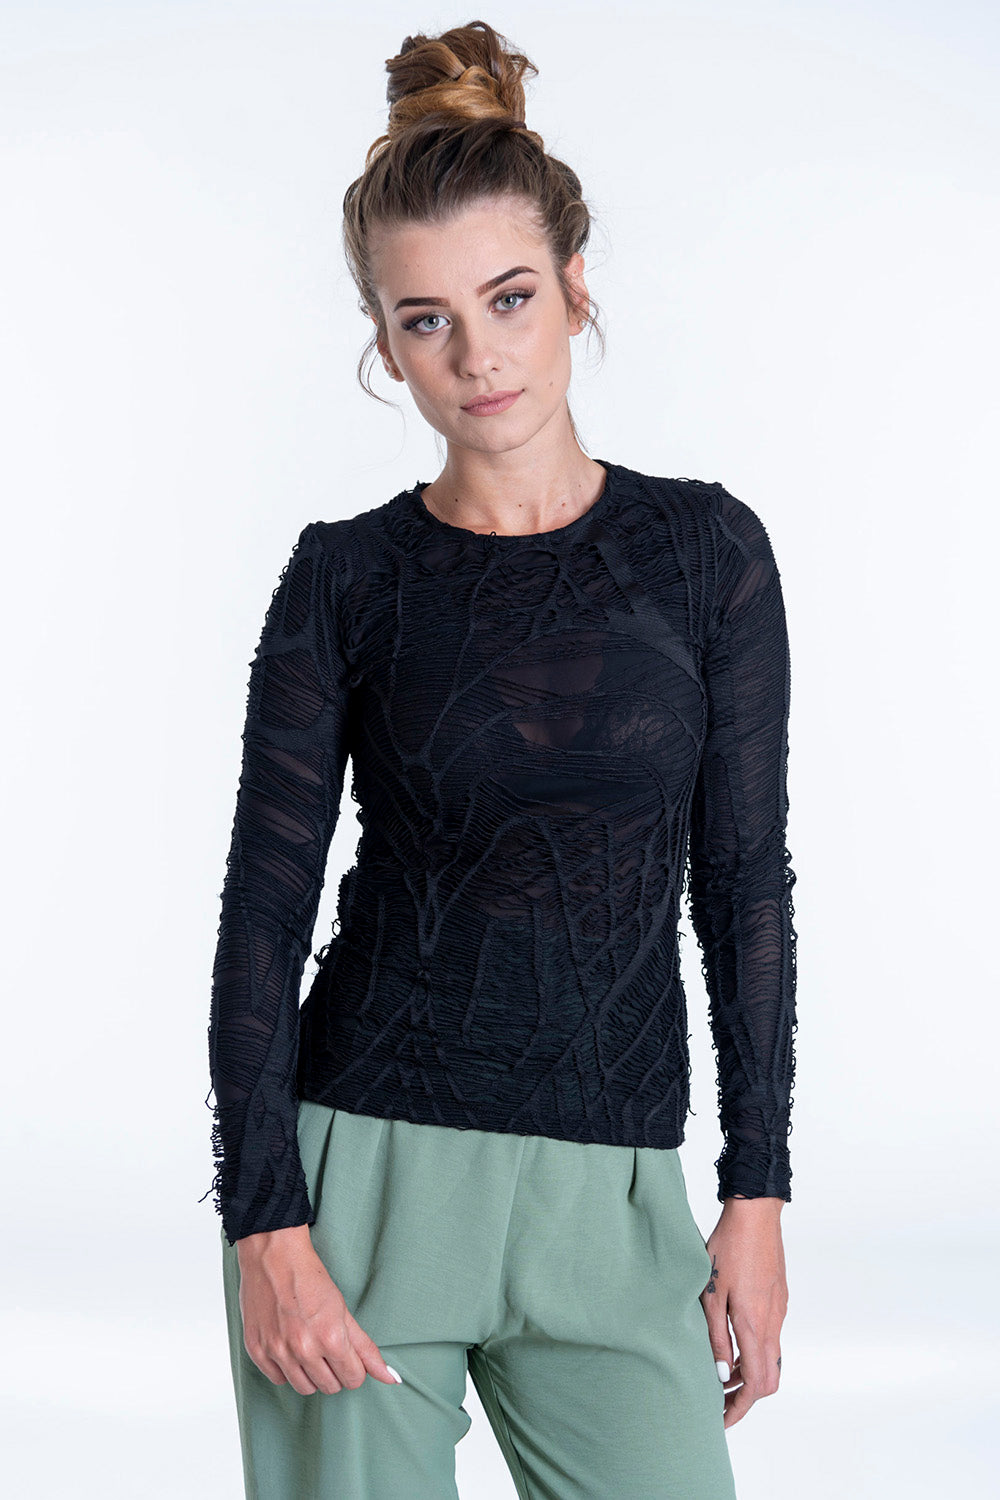 KikiRiki ripped long sleeved top